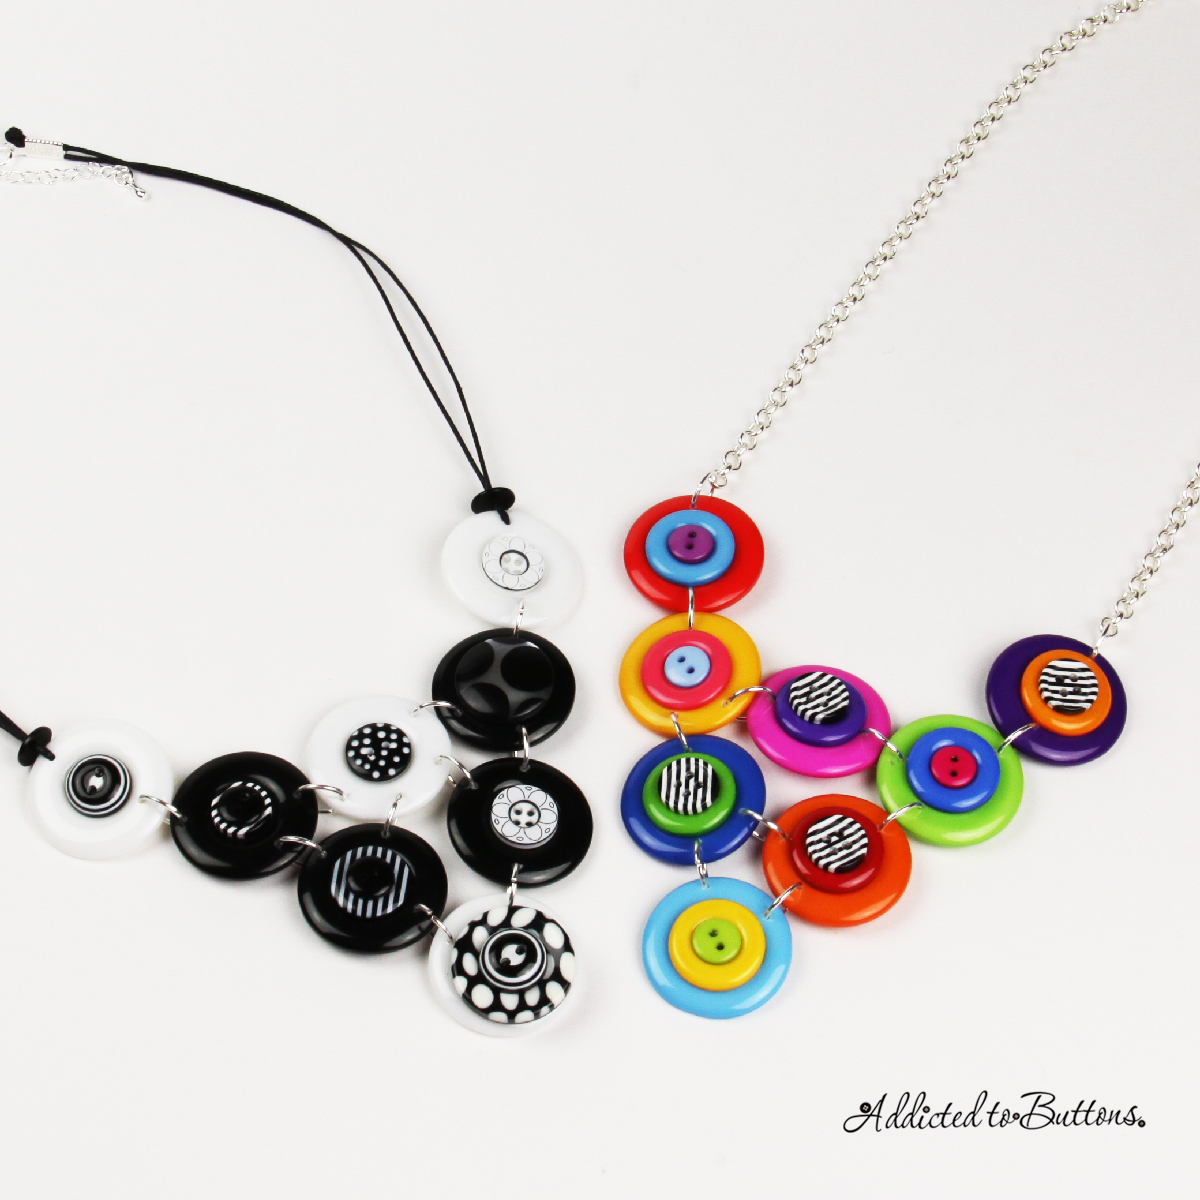 2014_Necklace_Linked_group